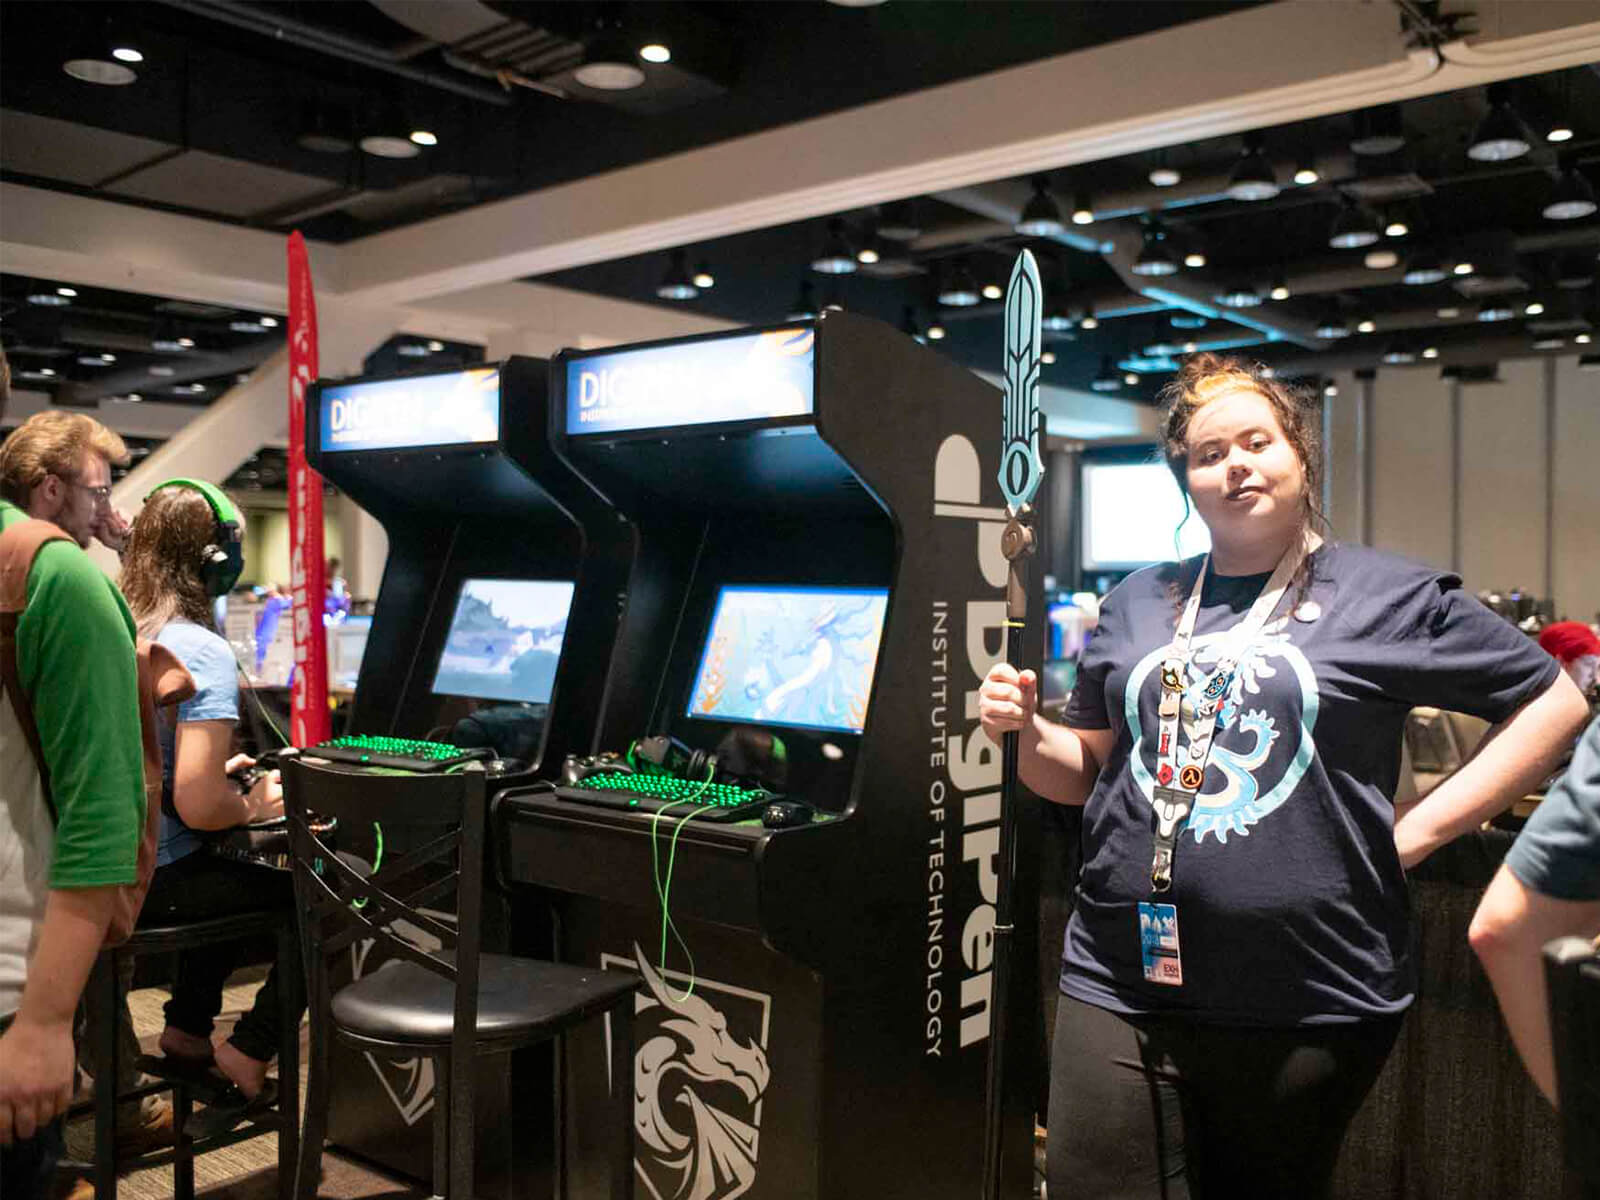 A DigiPen student staffs the PAX DigiPen arcade, cosplay spear in hand.